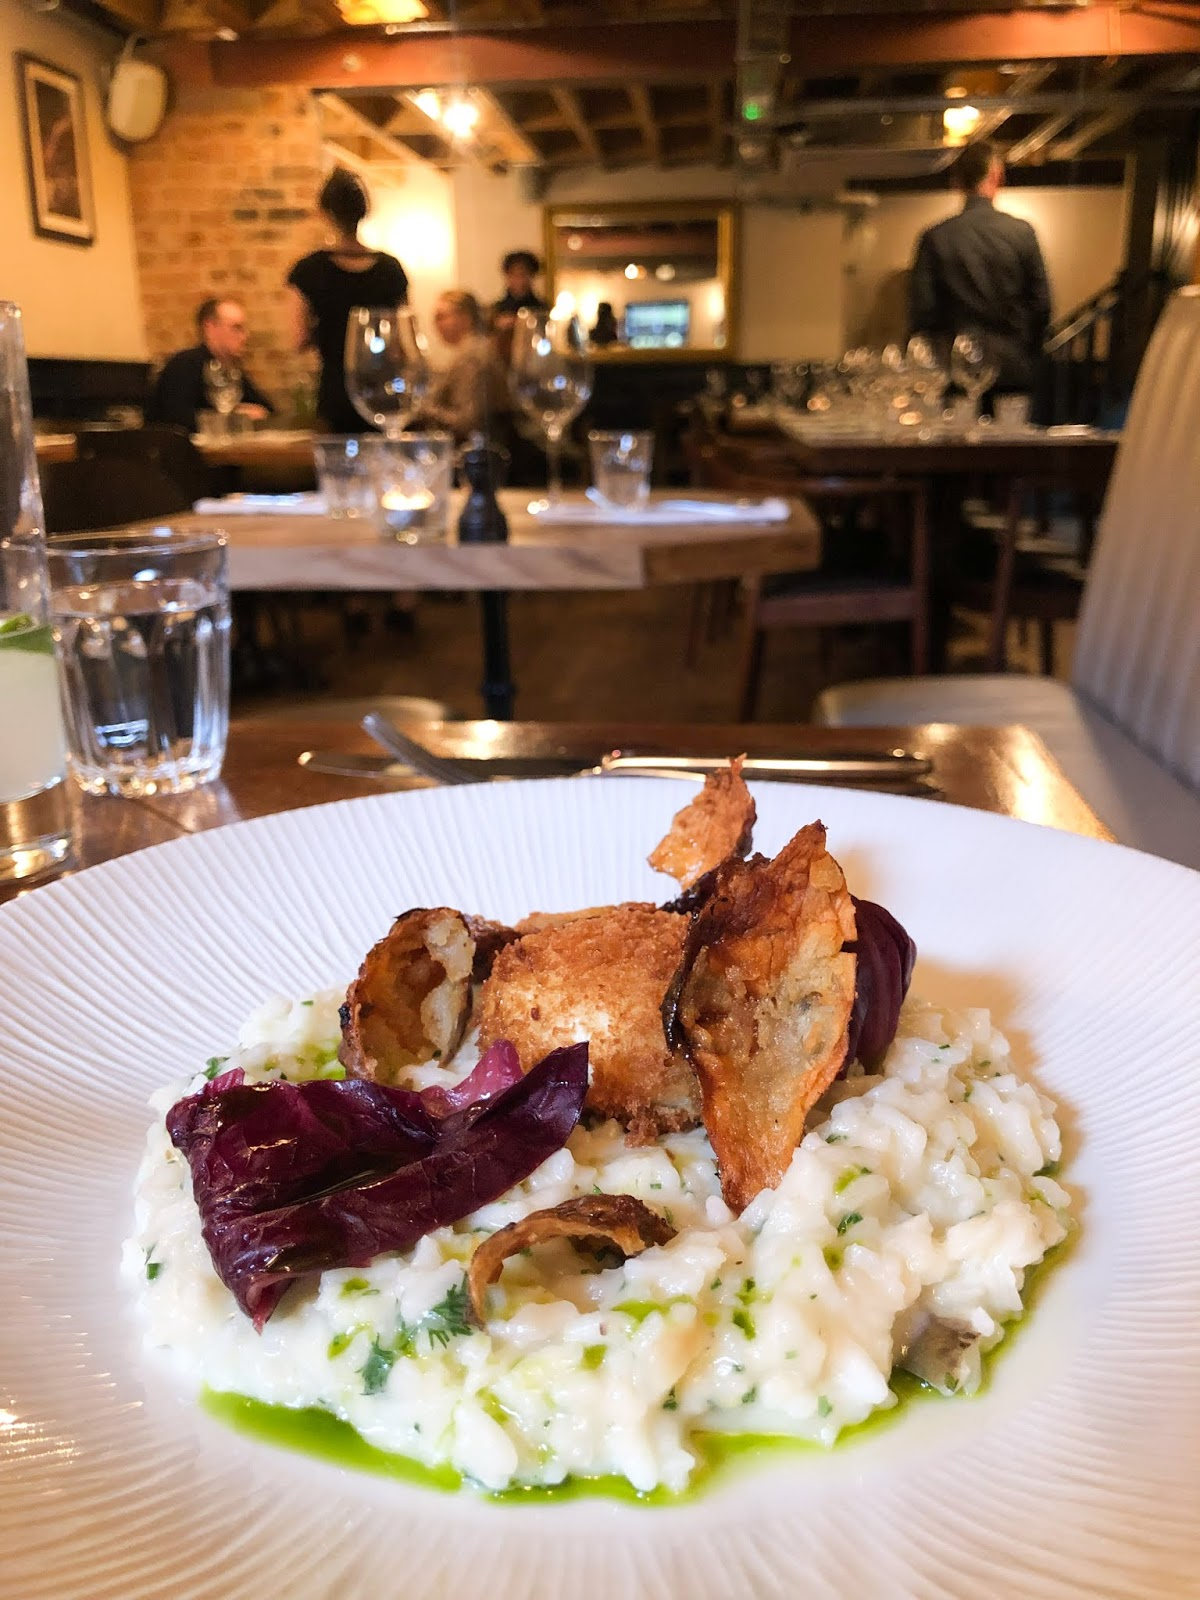 Liverpool Food Blogger - Wreckfish Menu Review